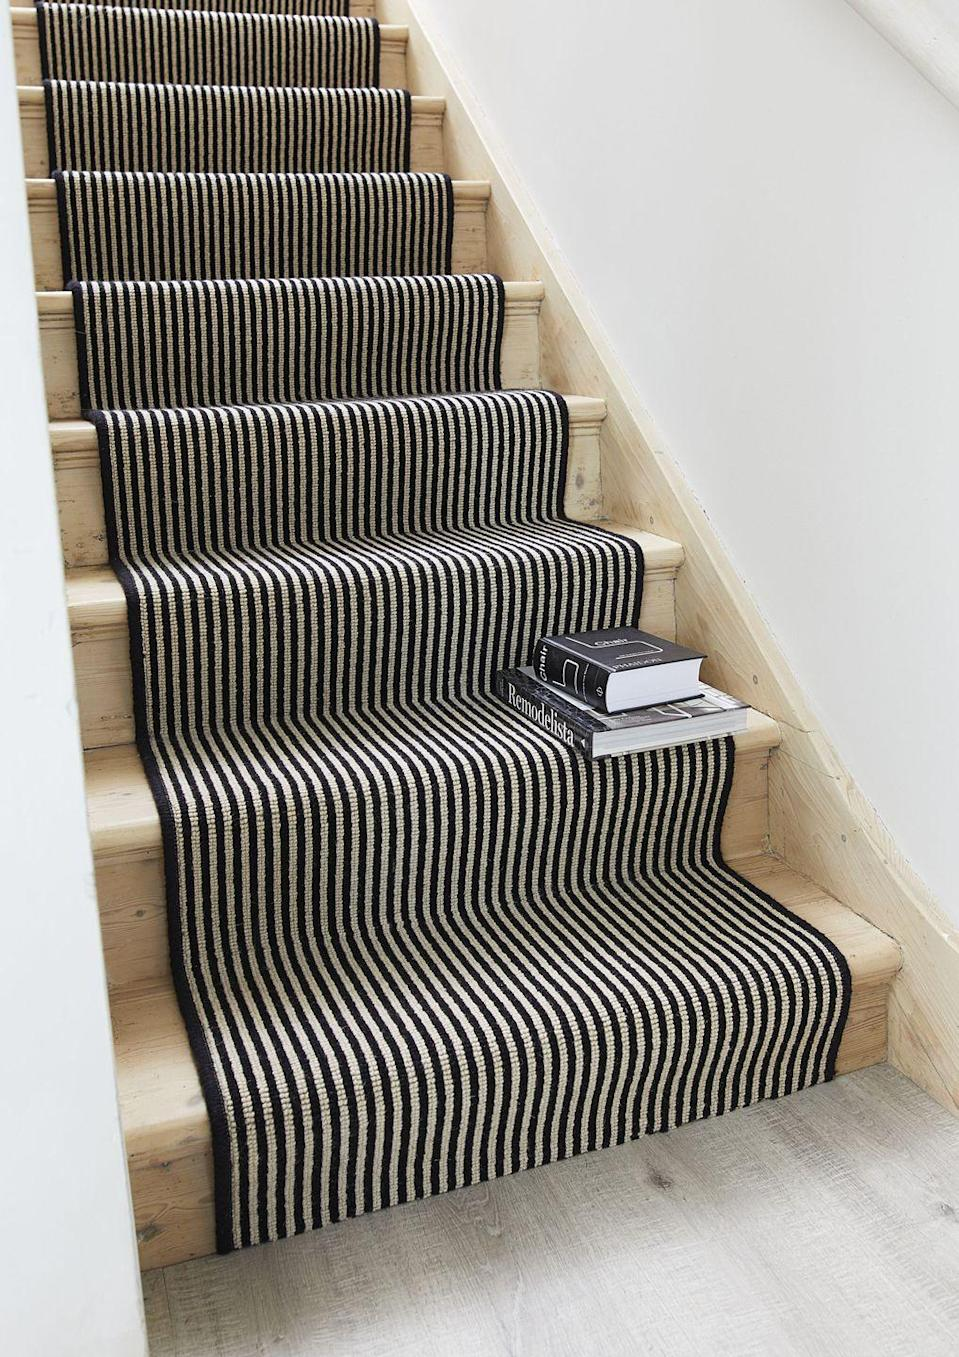 """<p>Make a design statement with stripes, which perfectly complements the natural wooden staircase. This stylish Portobello carpet, which is from our <a href=""""https://www.carpetright.co.uk/brands/house-beautiful/"""" rel=""""nofollow noopener"""" target=""""_blank"""" data-ylk=""""slk:House Beautiful range at Carpetright"""" class=""""link rapid-noclick-resp"""">House Beautiful range at Carpetright</a>, ticks all the style boxes.<br></p><p>Pictured: <a href=""""https://www.carpetright.co.uk/carpets/portobello/"""" rel=""""nofollow noopener"""" target=""""_blank"""" data-ylk=""""slk:Carpetright x House Beautiful Portobello Carpet In Magpie"""" class=""""link rapid-noclick-resp"""">Carpetright x House Beautiful Portobello Carpet In Magpie</a></p>"""